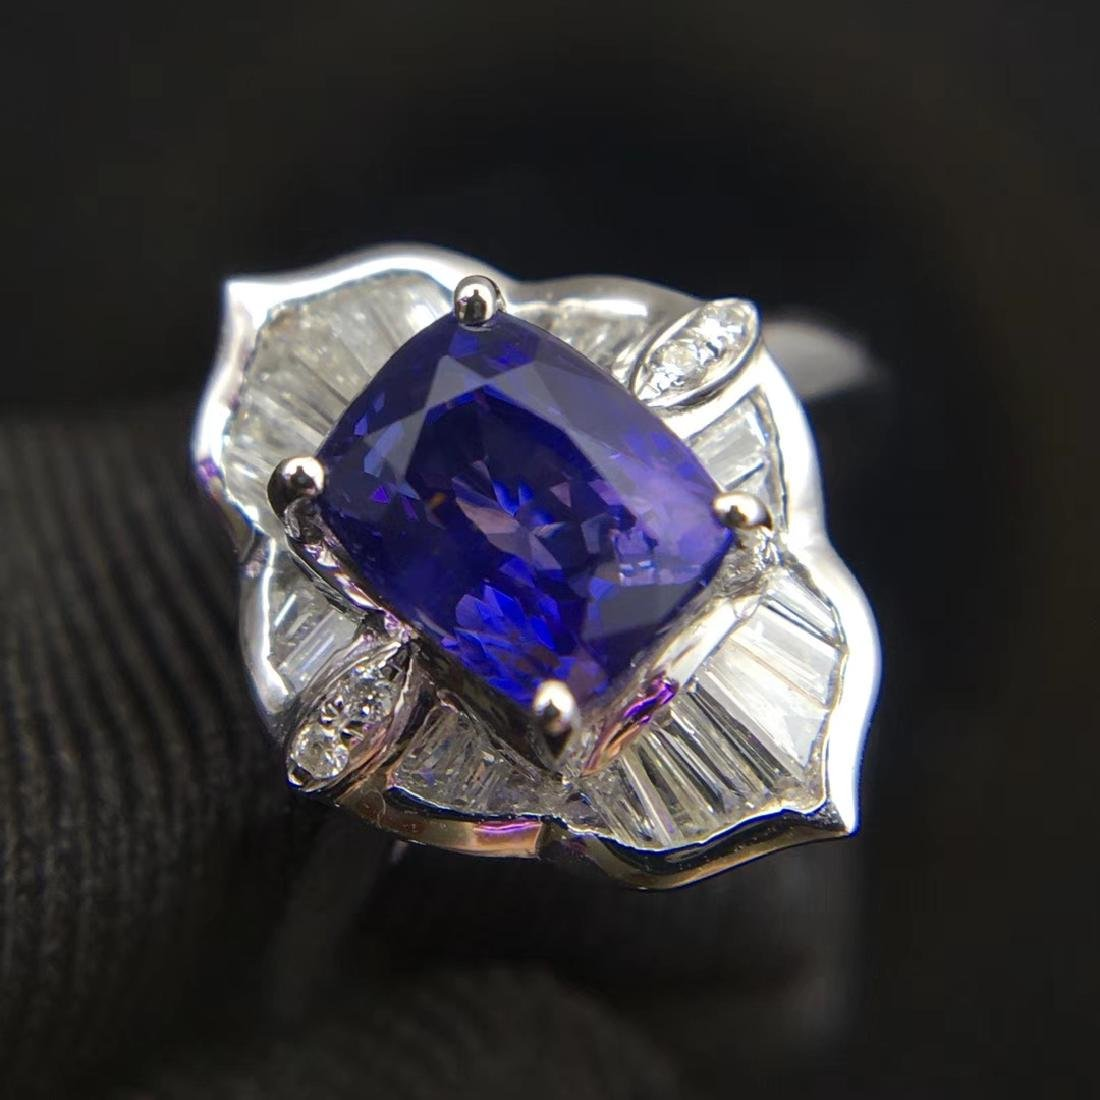 1.52ct Sapphire Ring in 18kt white Gold - 3